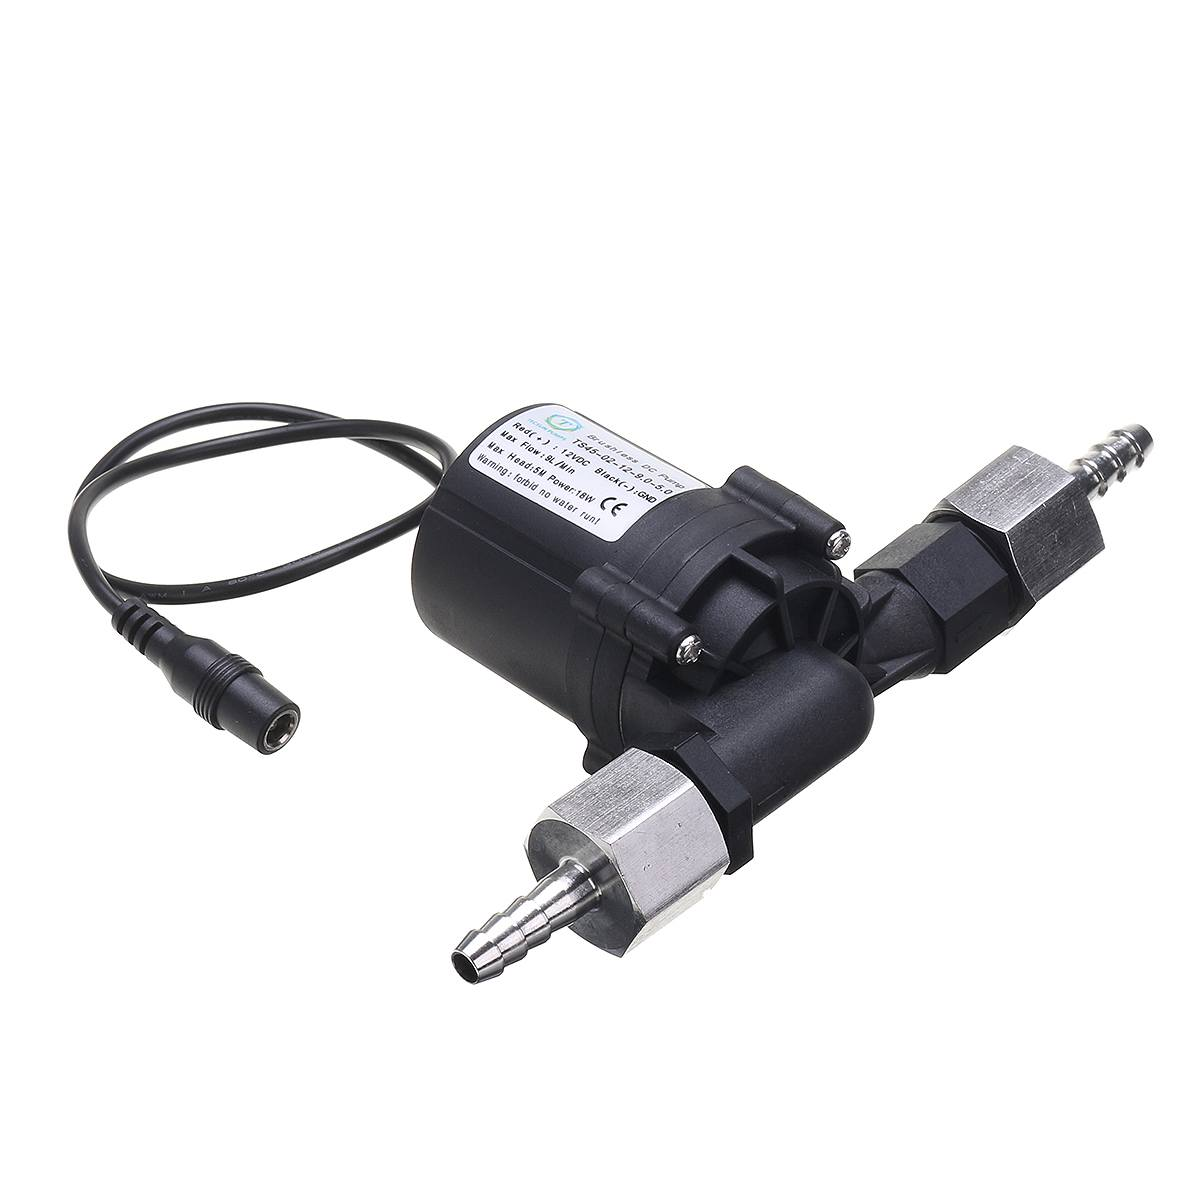 DC 12V Solar Hot Water Pump Circulation System Brushless Motor Accessories G1/2 Homemade Beer Pumps Aquarium Water Cooling Parts